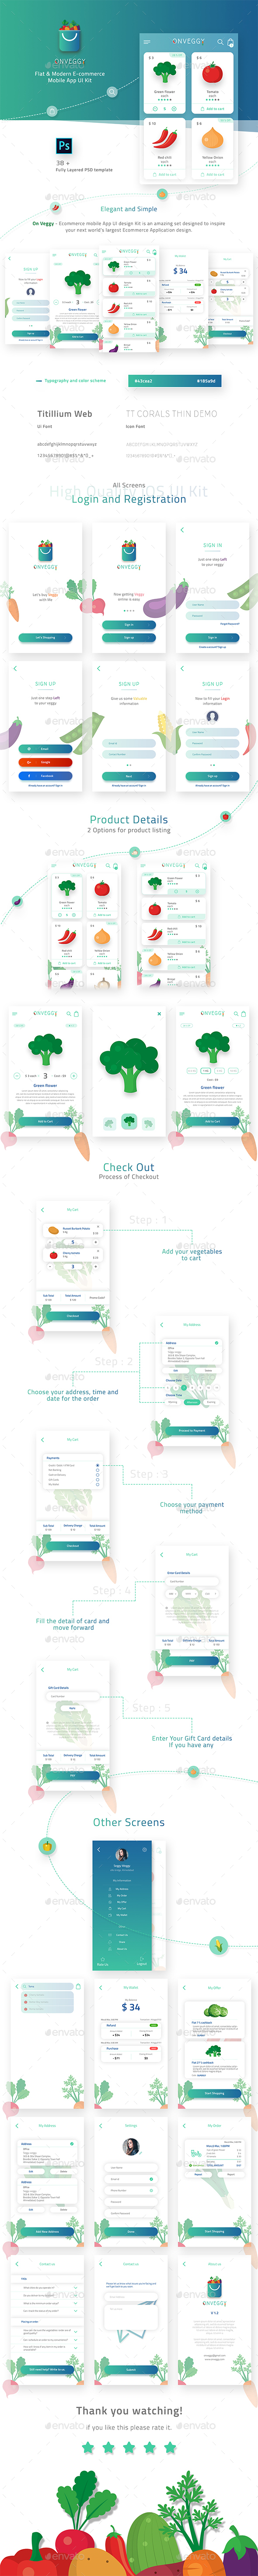 Admin Tab UI KIT Sketch (User Interfaces)